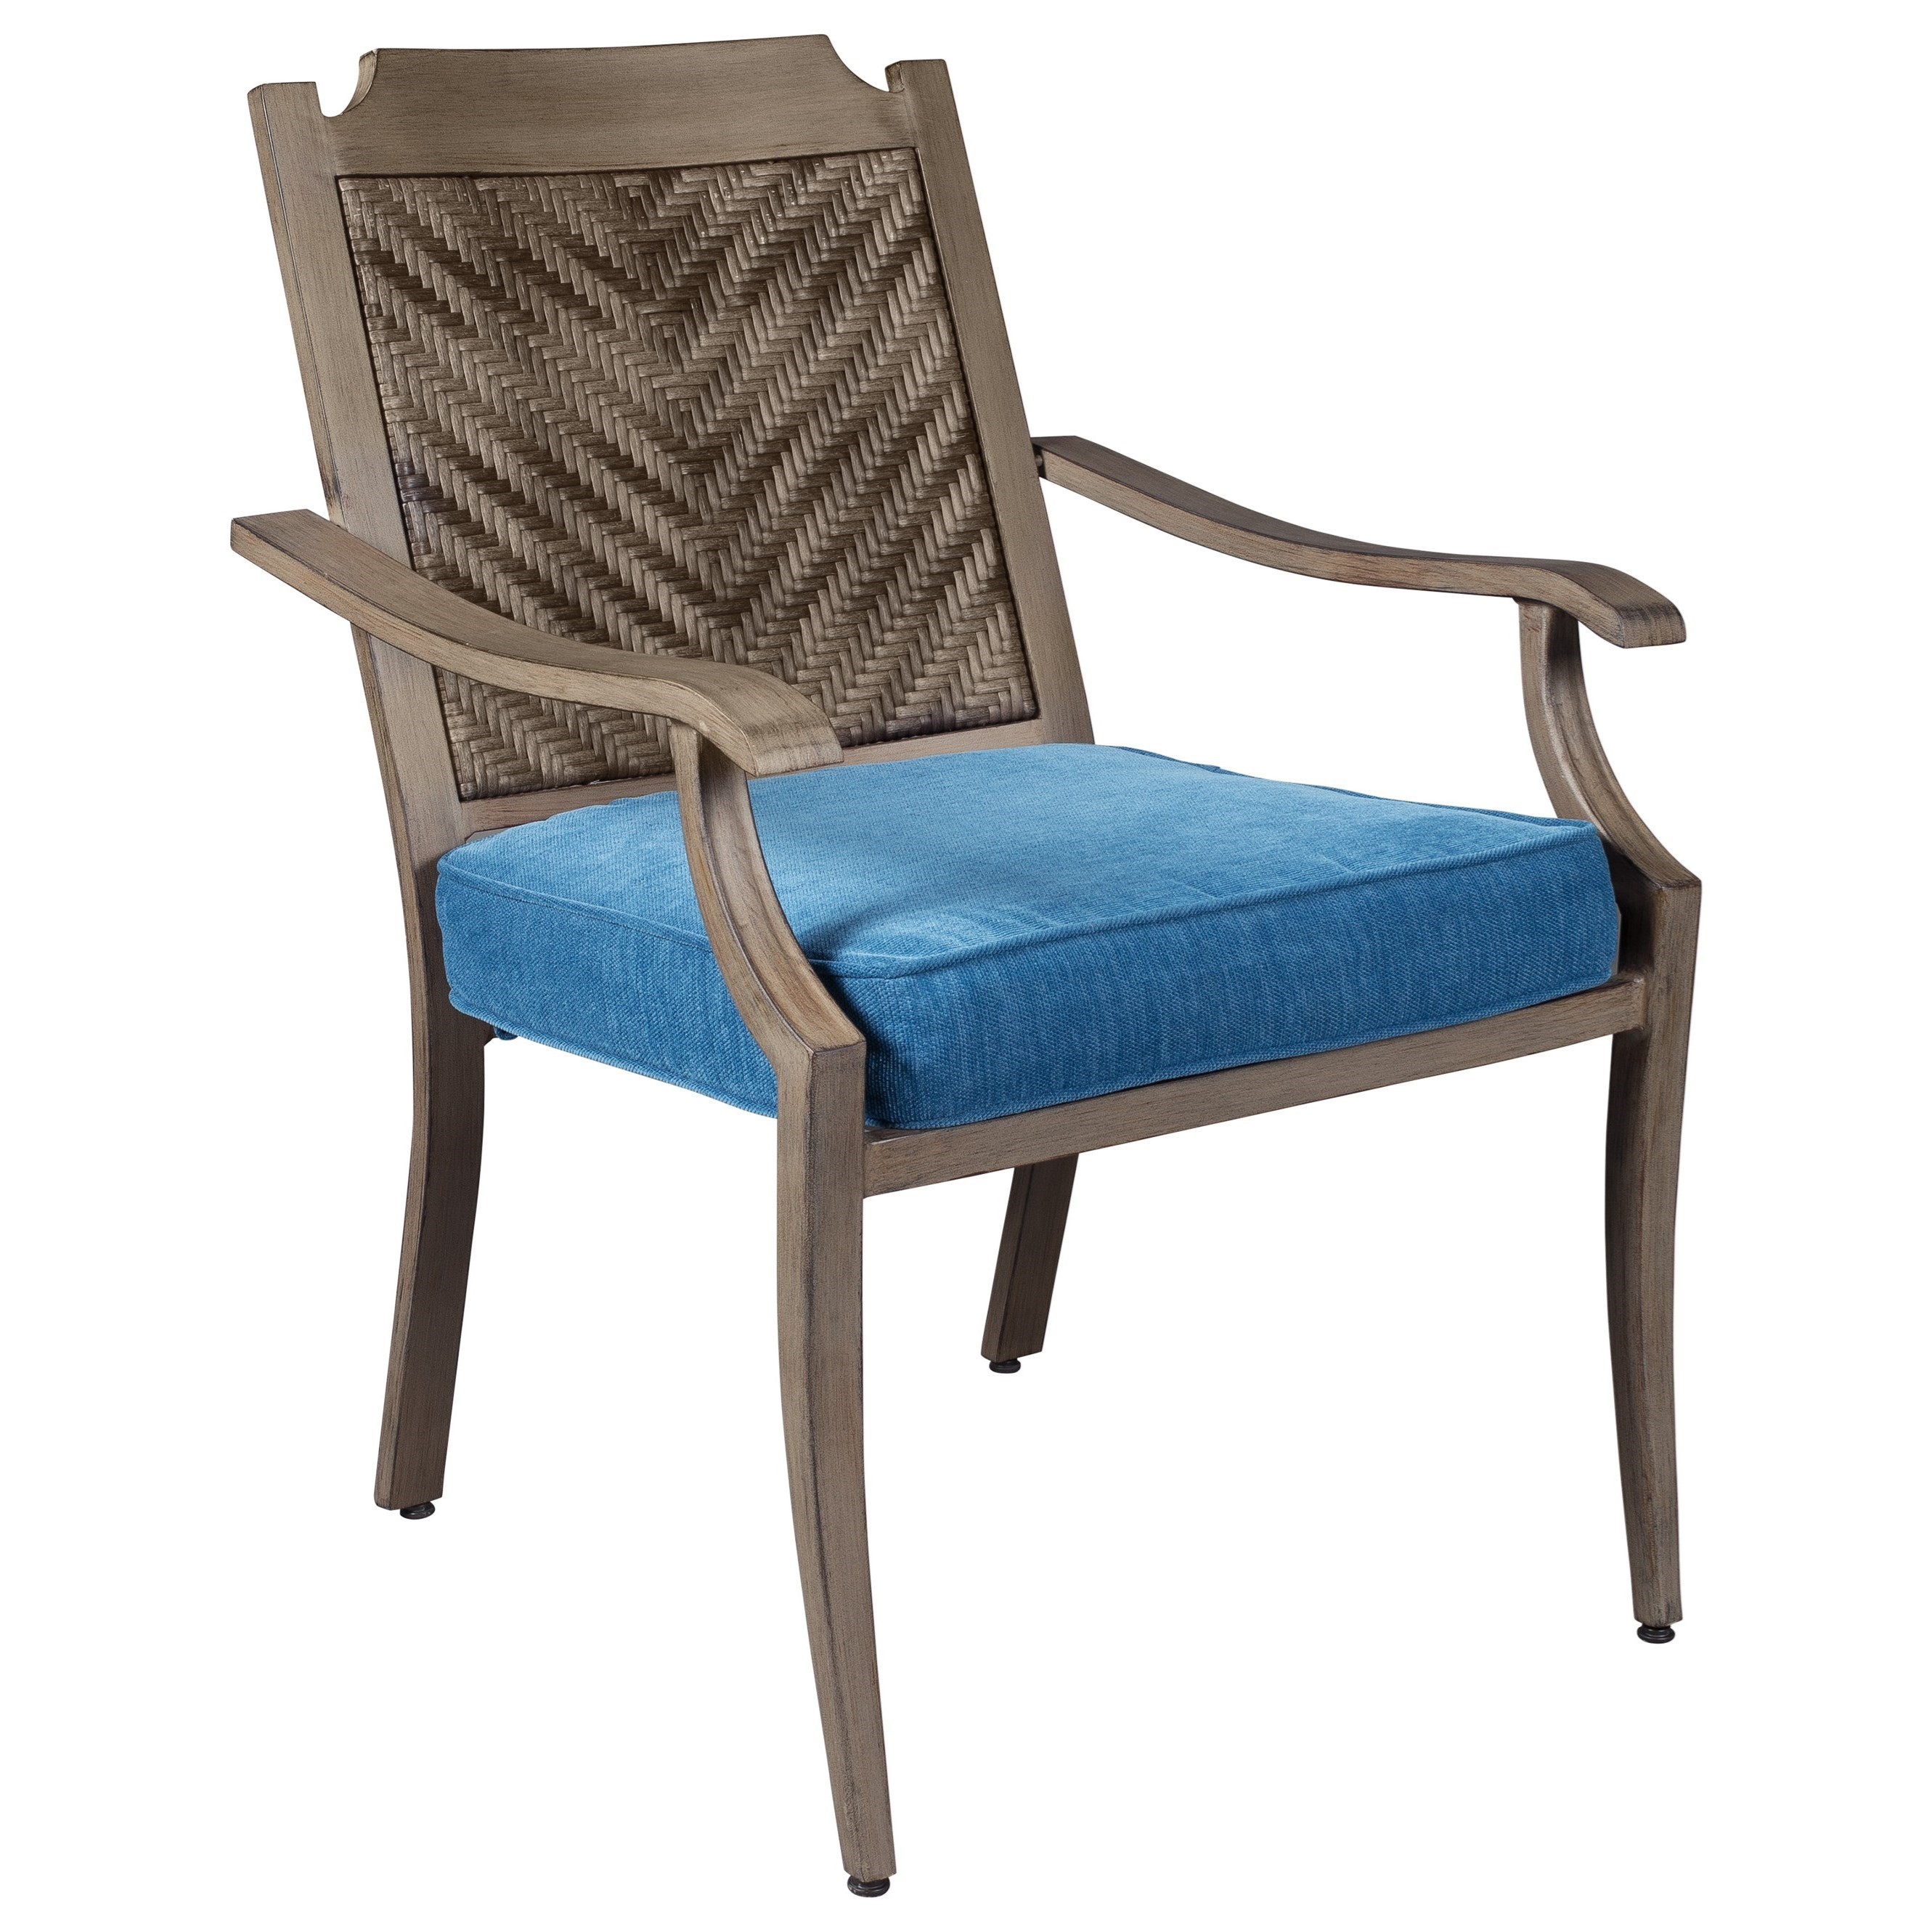 Signature Design by Ashley Partanna Set of 4 Outdoor Chairs with Cushion - Item Number: P556-601A